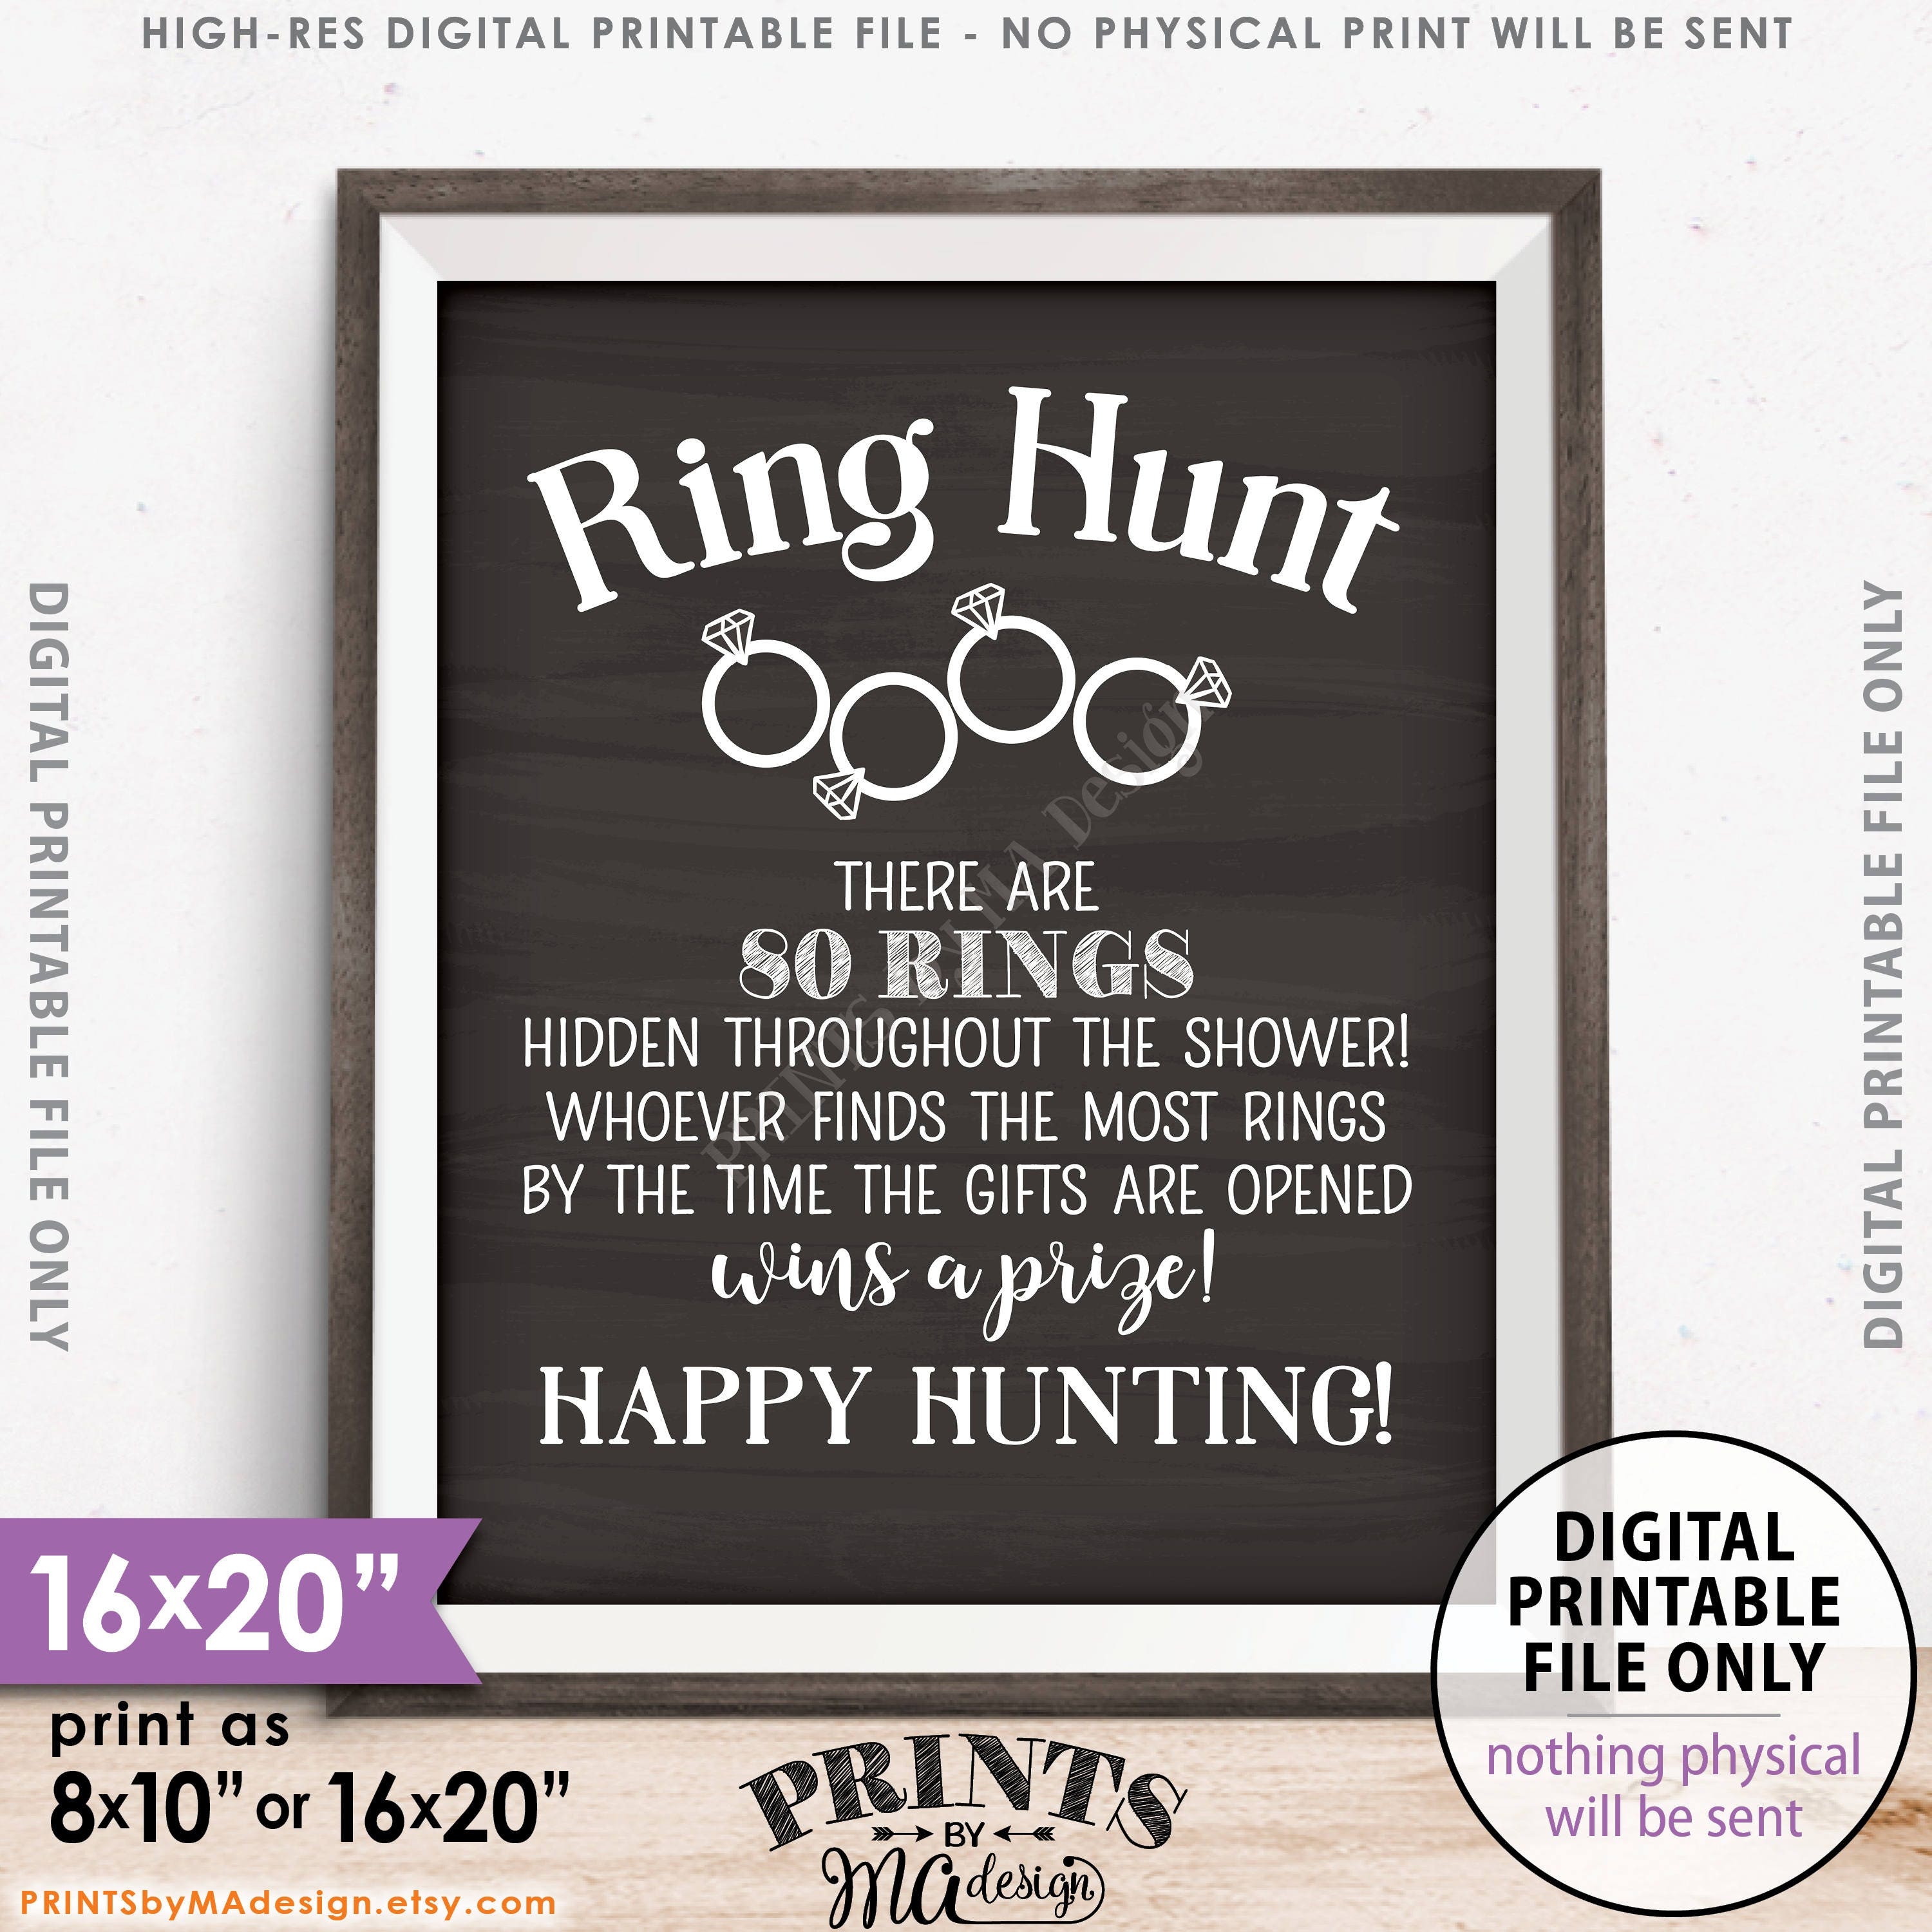 ring hunt game ring hunt sign bridal shower game ring scavenger hunt game for wedding shower chalkboard style printable 8x1016x20 sign